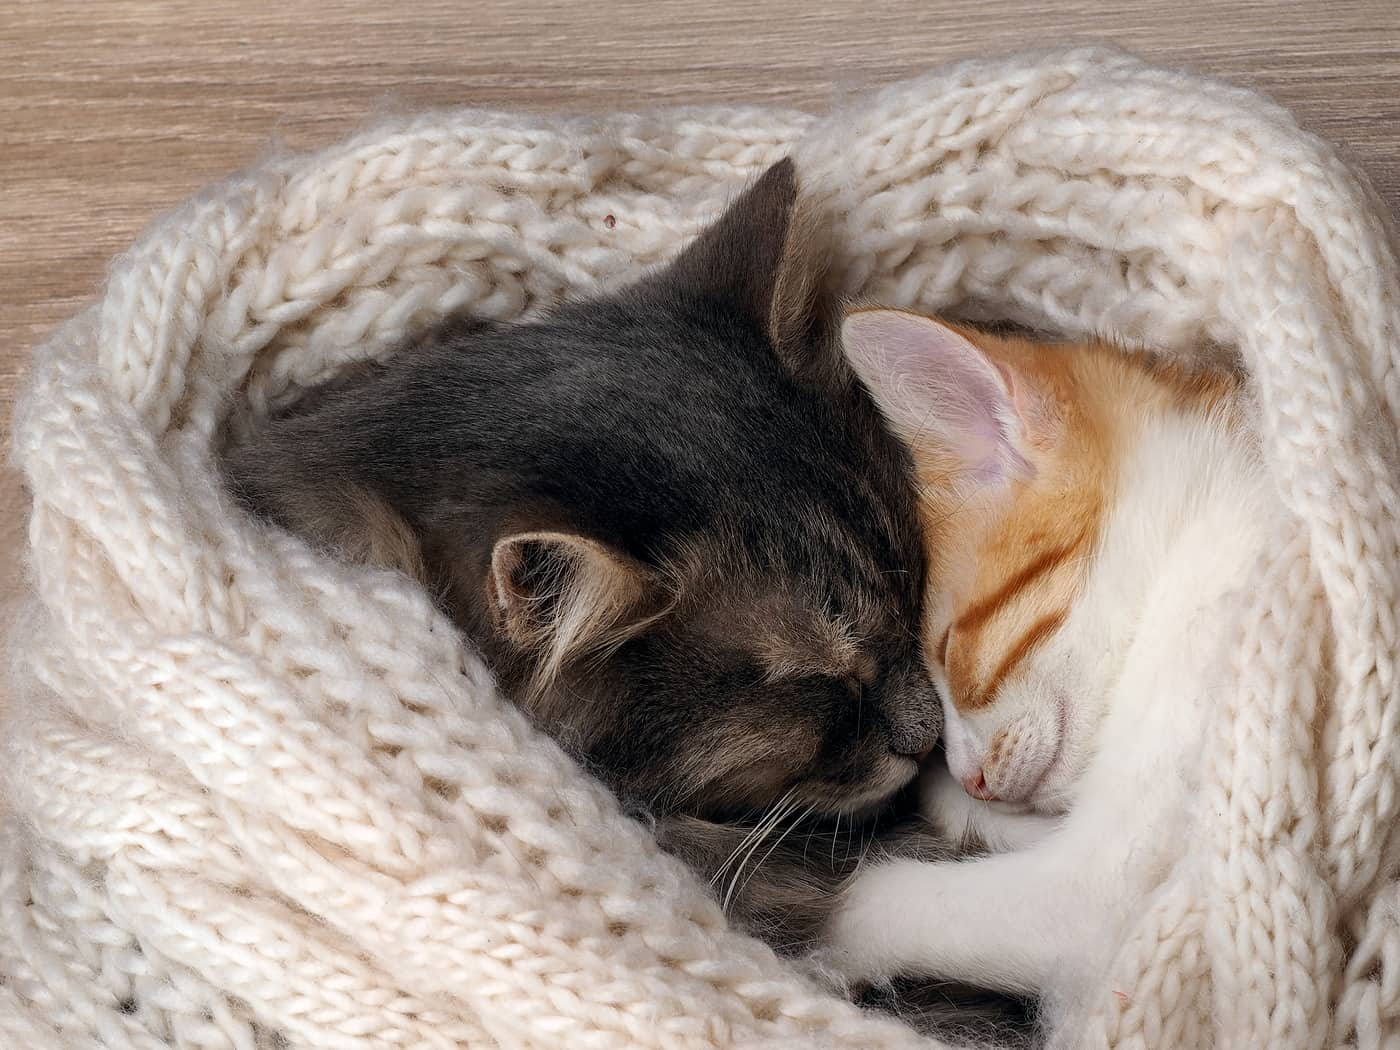 Two cats snuggling head to head in a blanket.